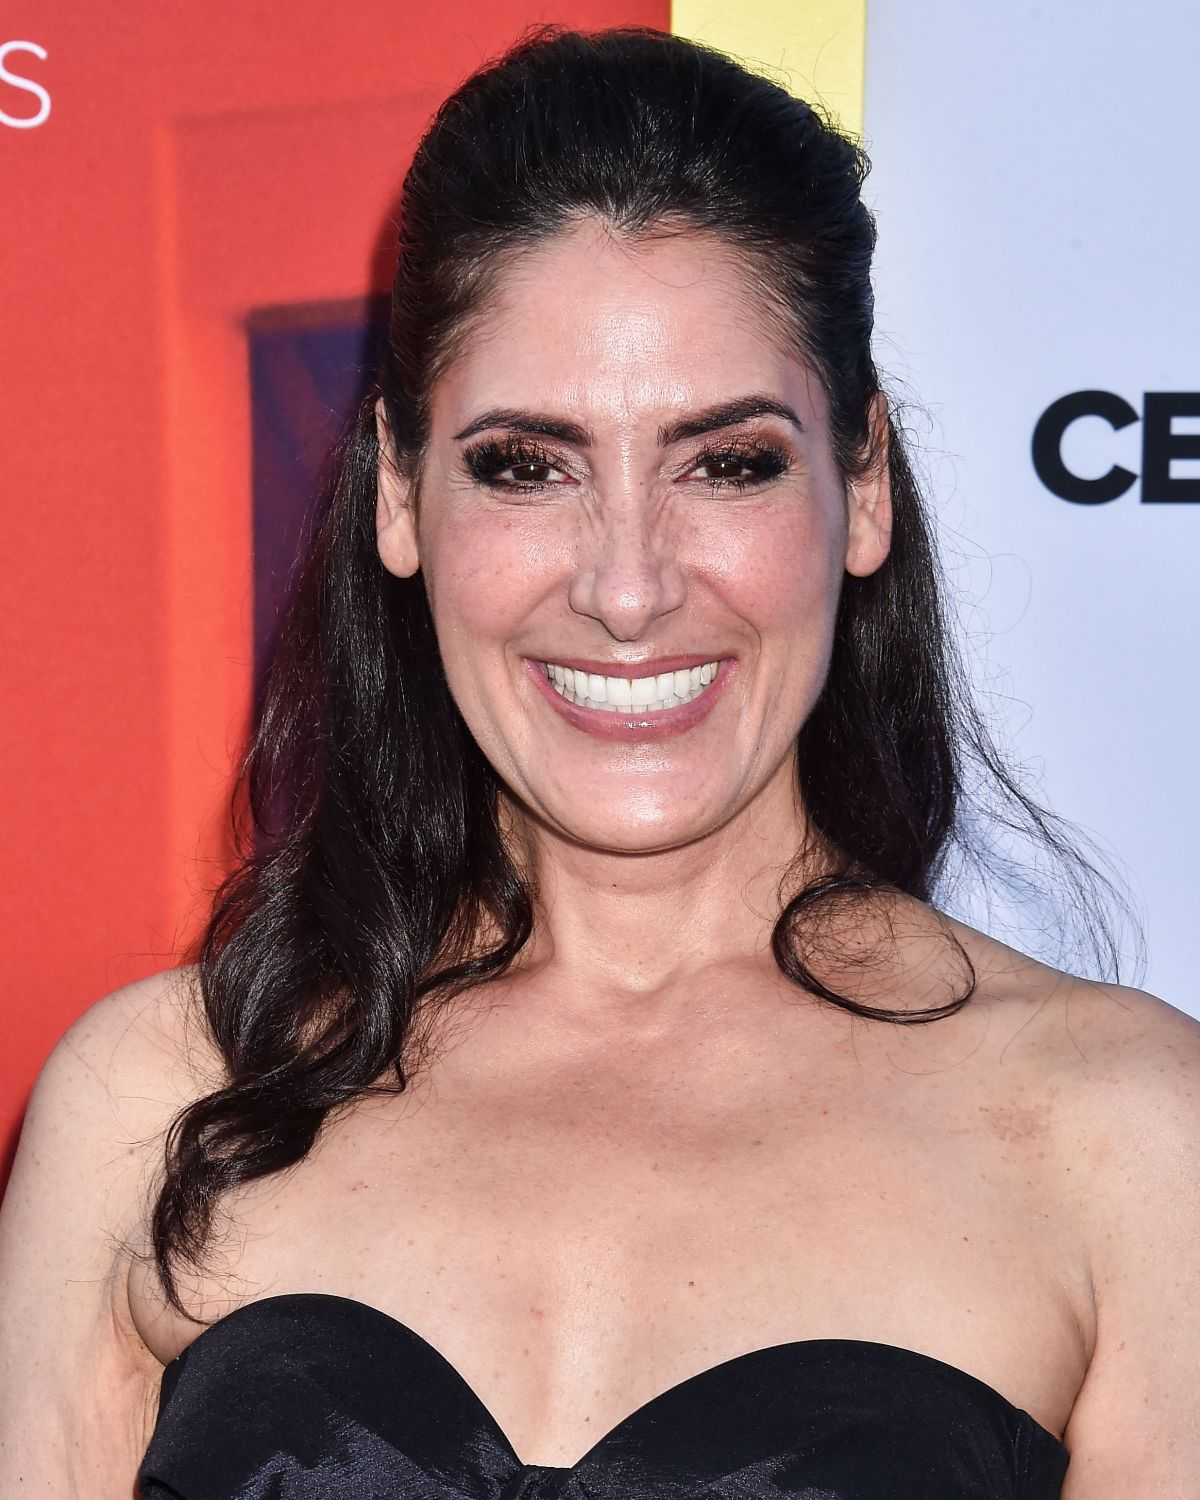 Alicia Coppola At Shameless TV Show, 100th episode red